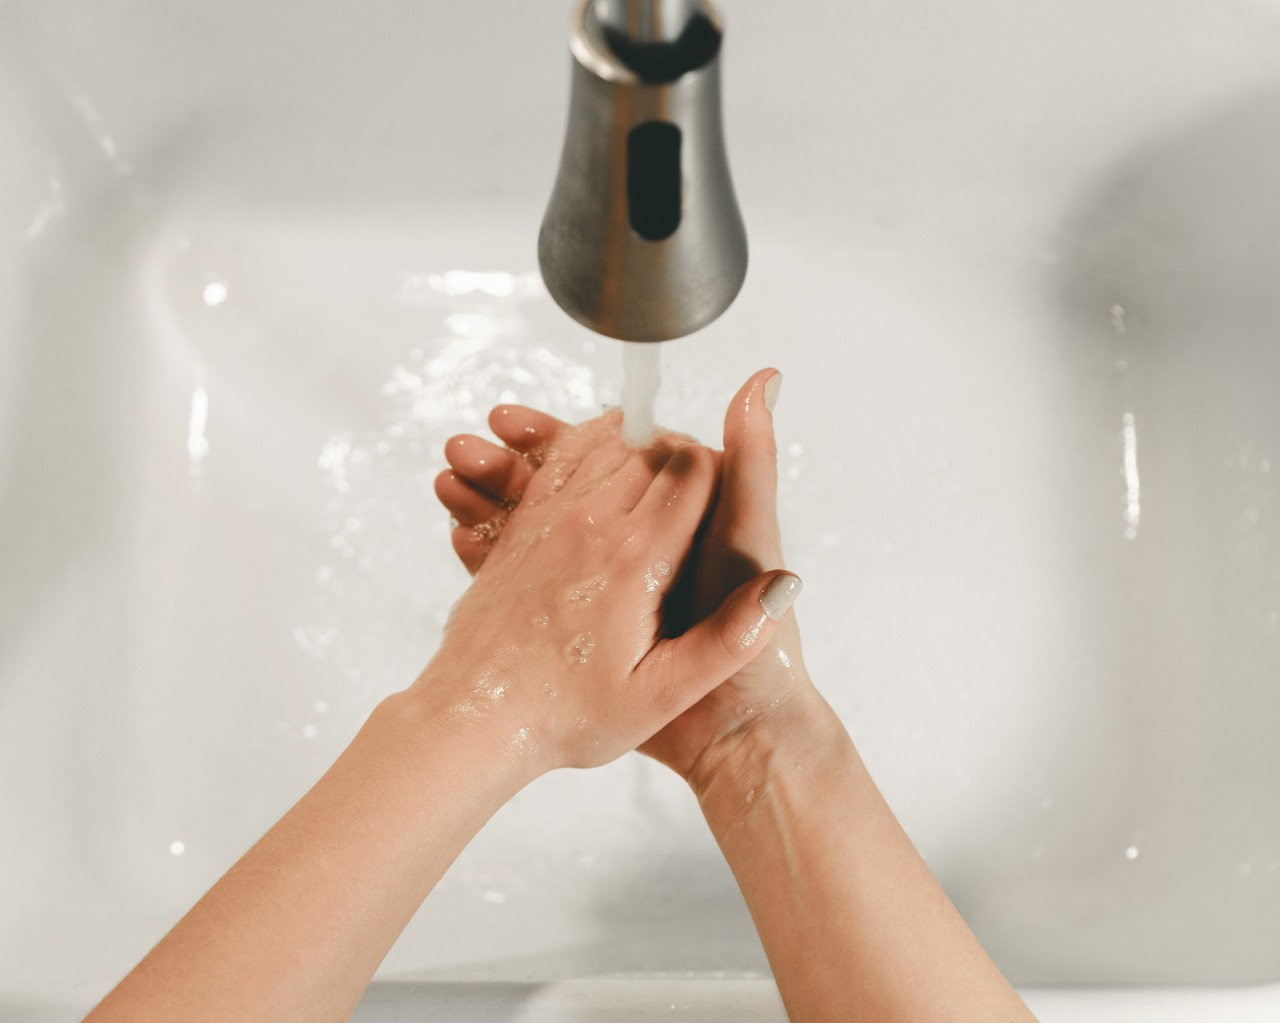 Person washing hands to prevent spread of germs